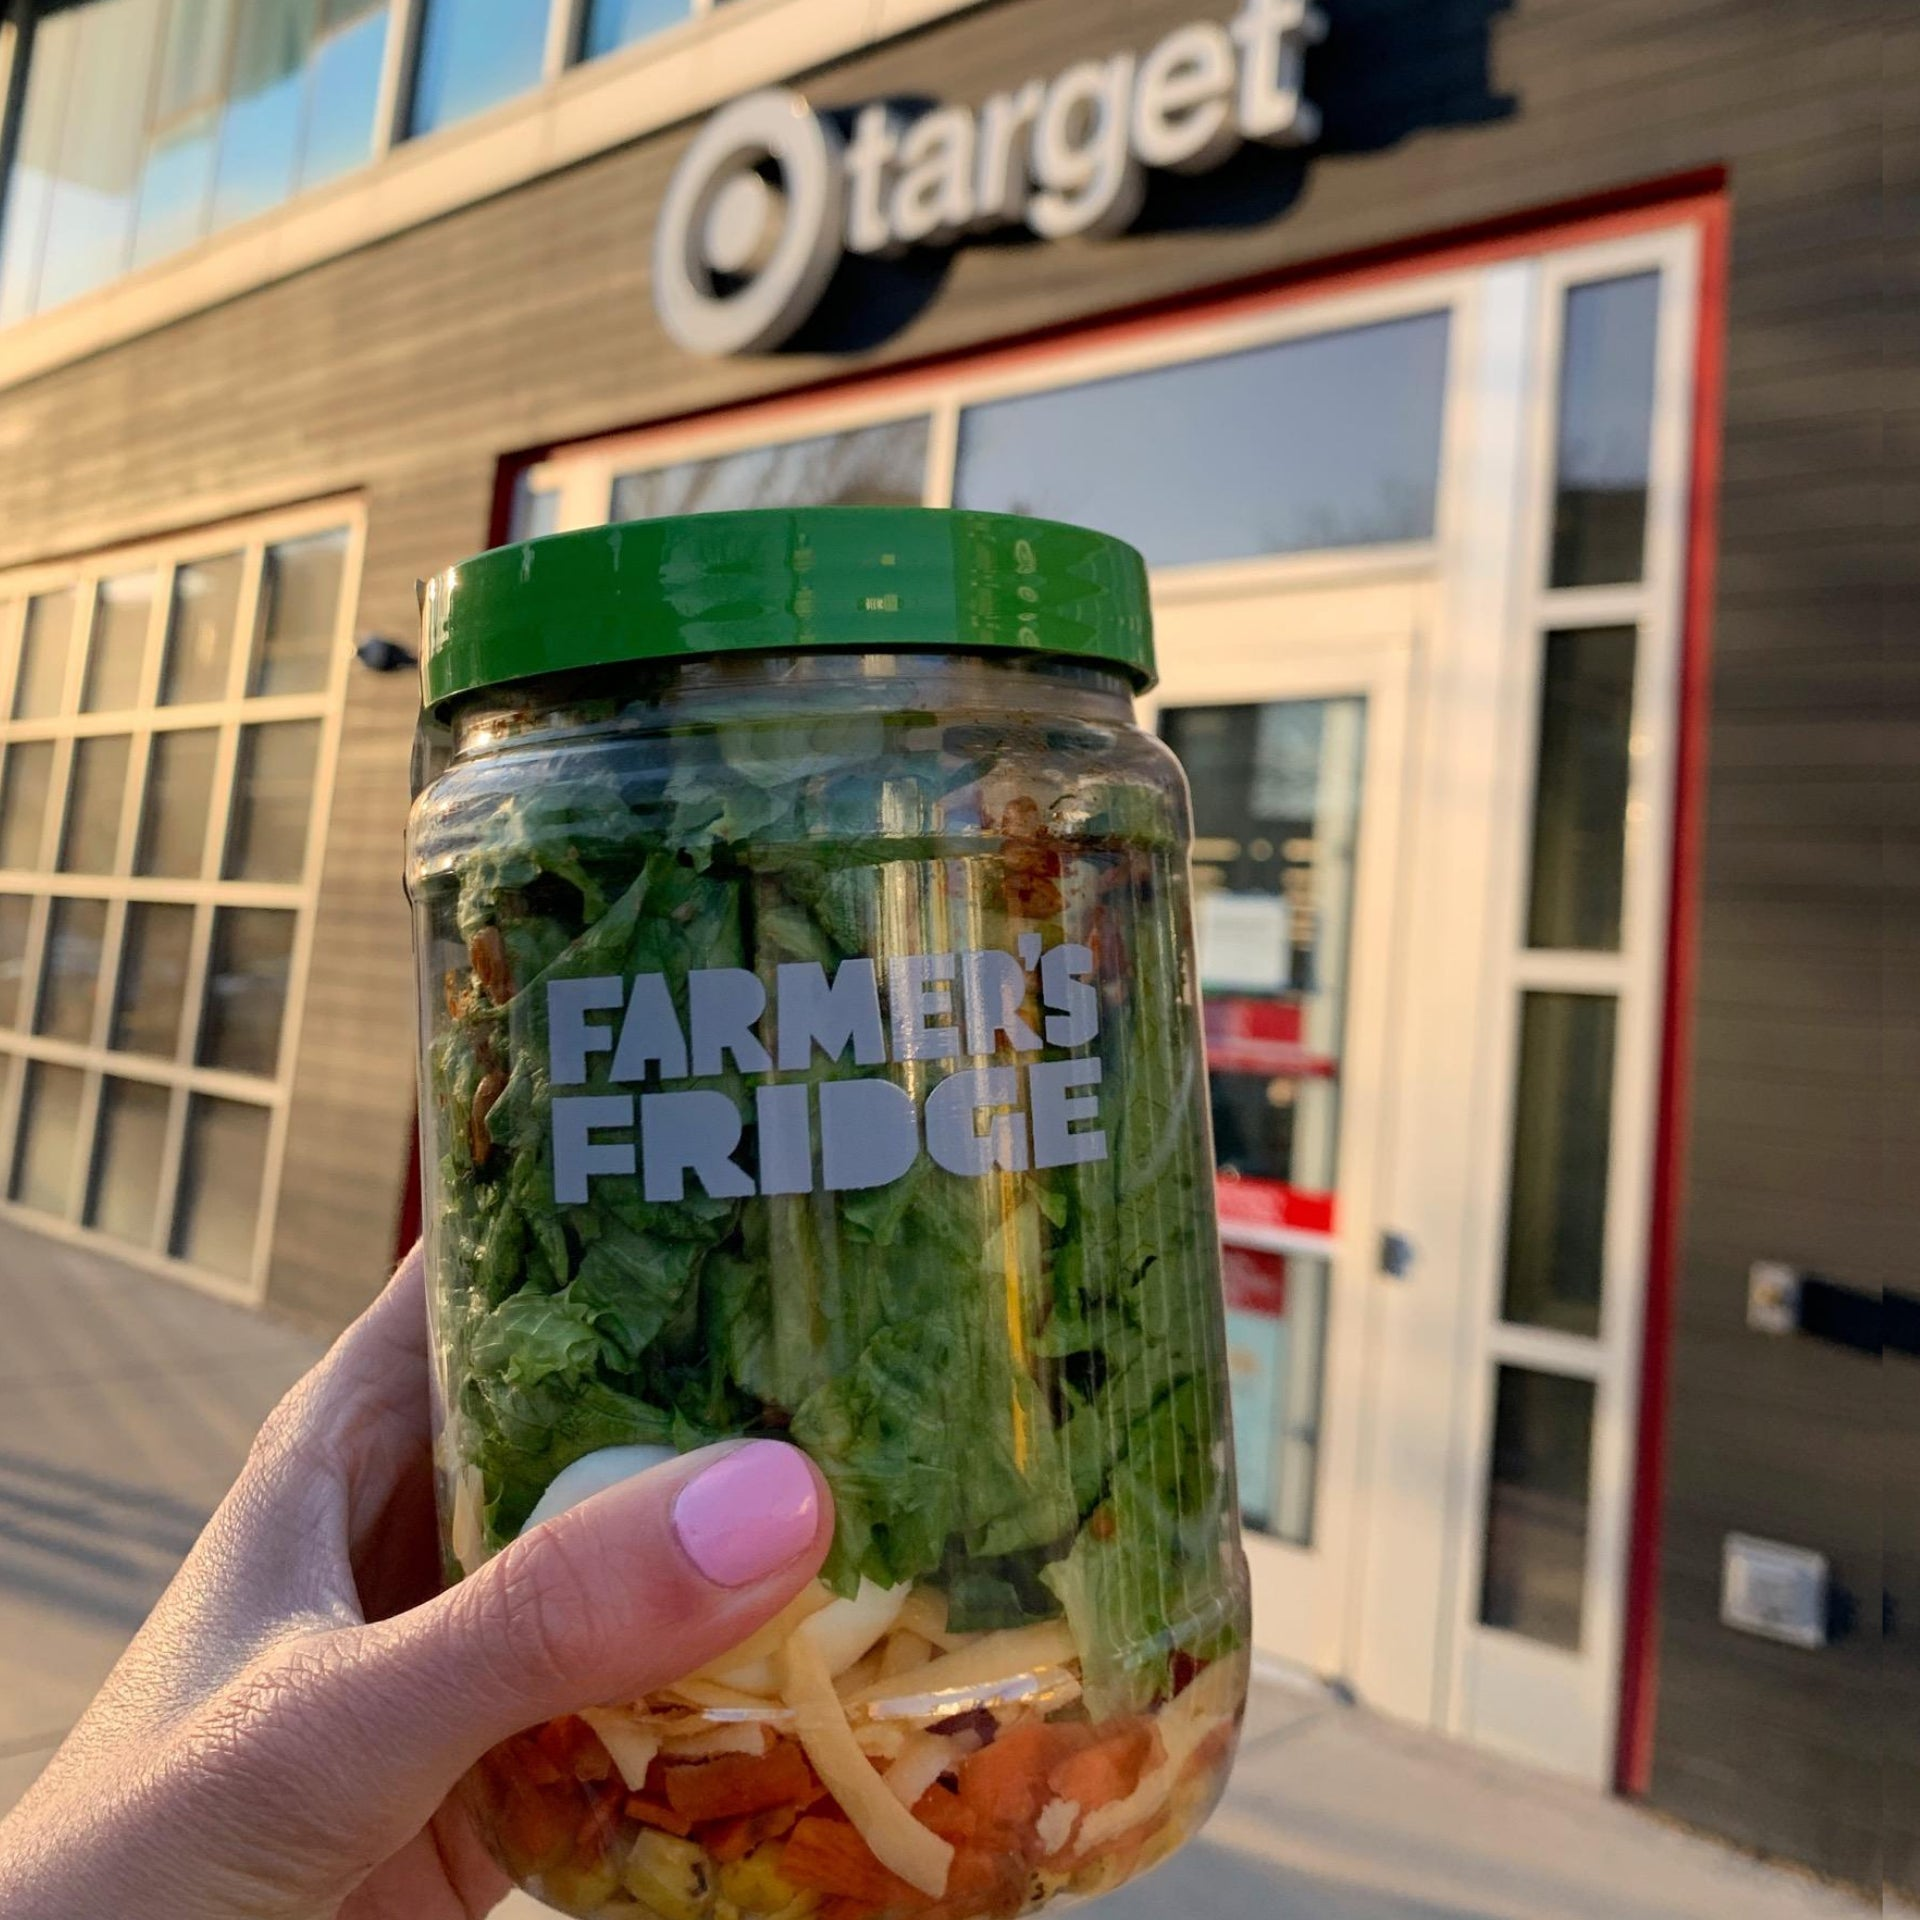 Hand holding a Farmer's Fridge salad jar in front of a Target store.